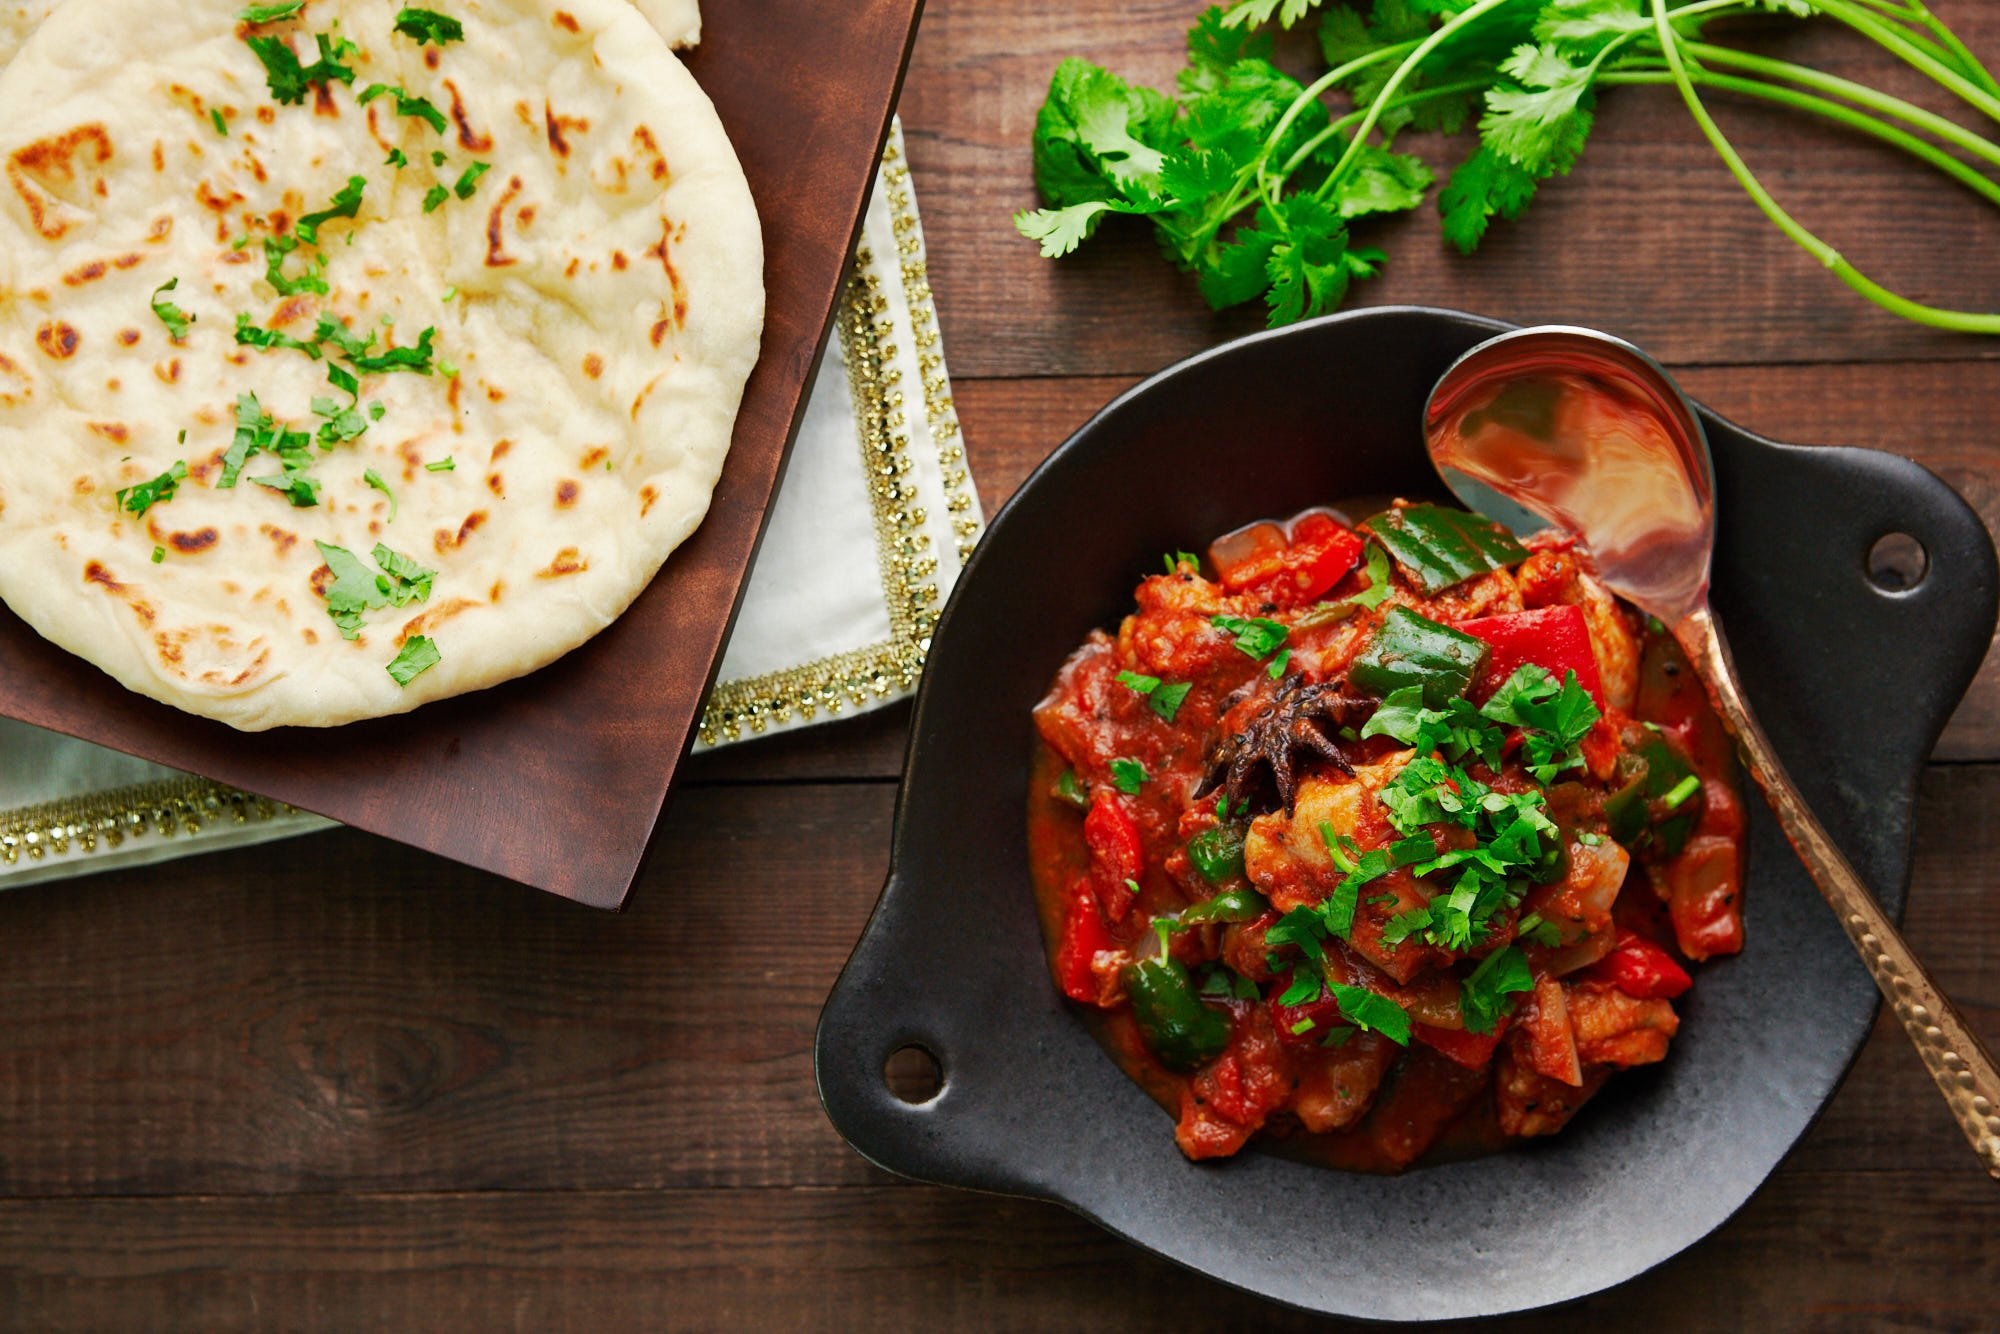 Buttered naan on a wooden plate with a serving of Chicken Jalfrezi with peppers, onions, and tomatoes.